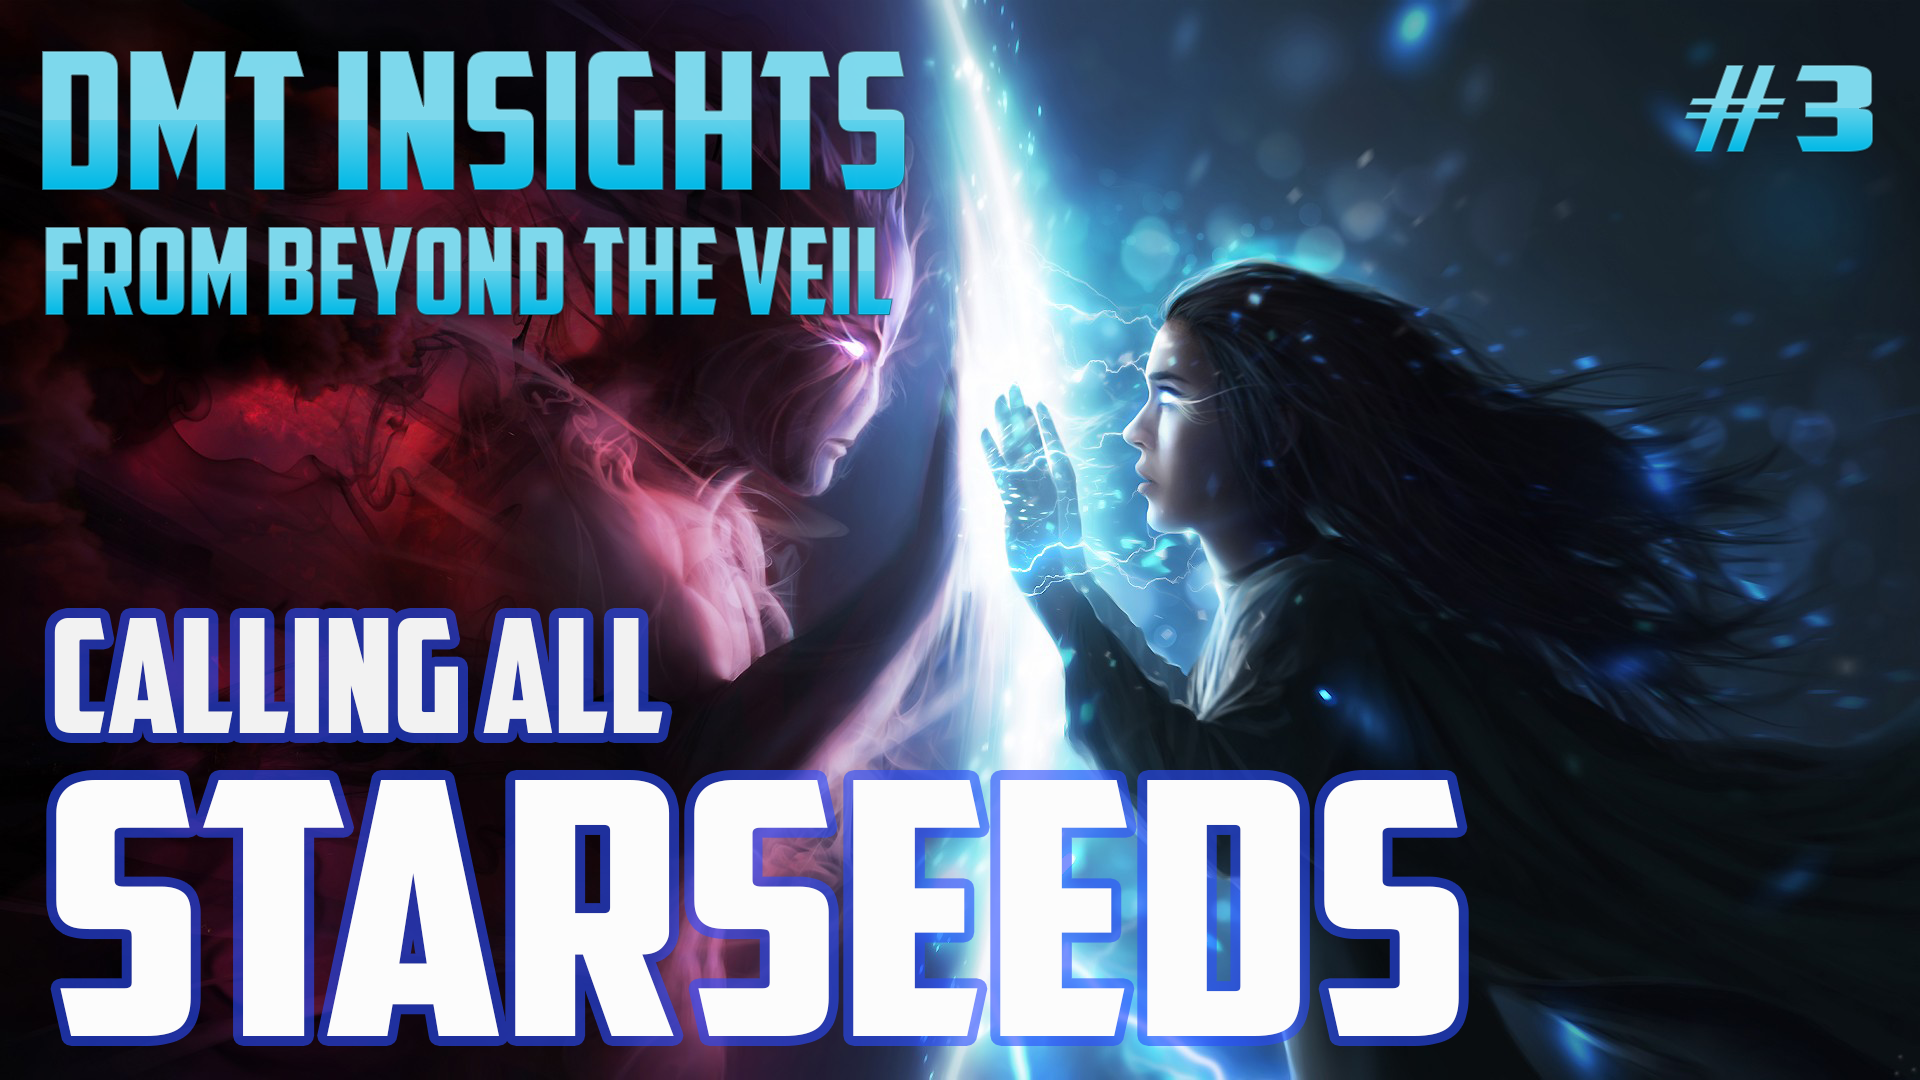 577 Insights: DMT vs LSD and Starseeds with Frank Castle